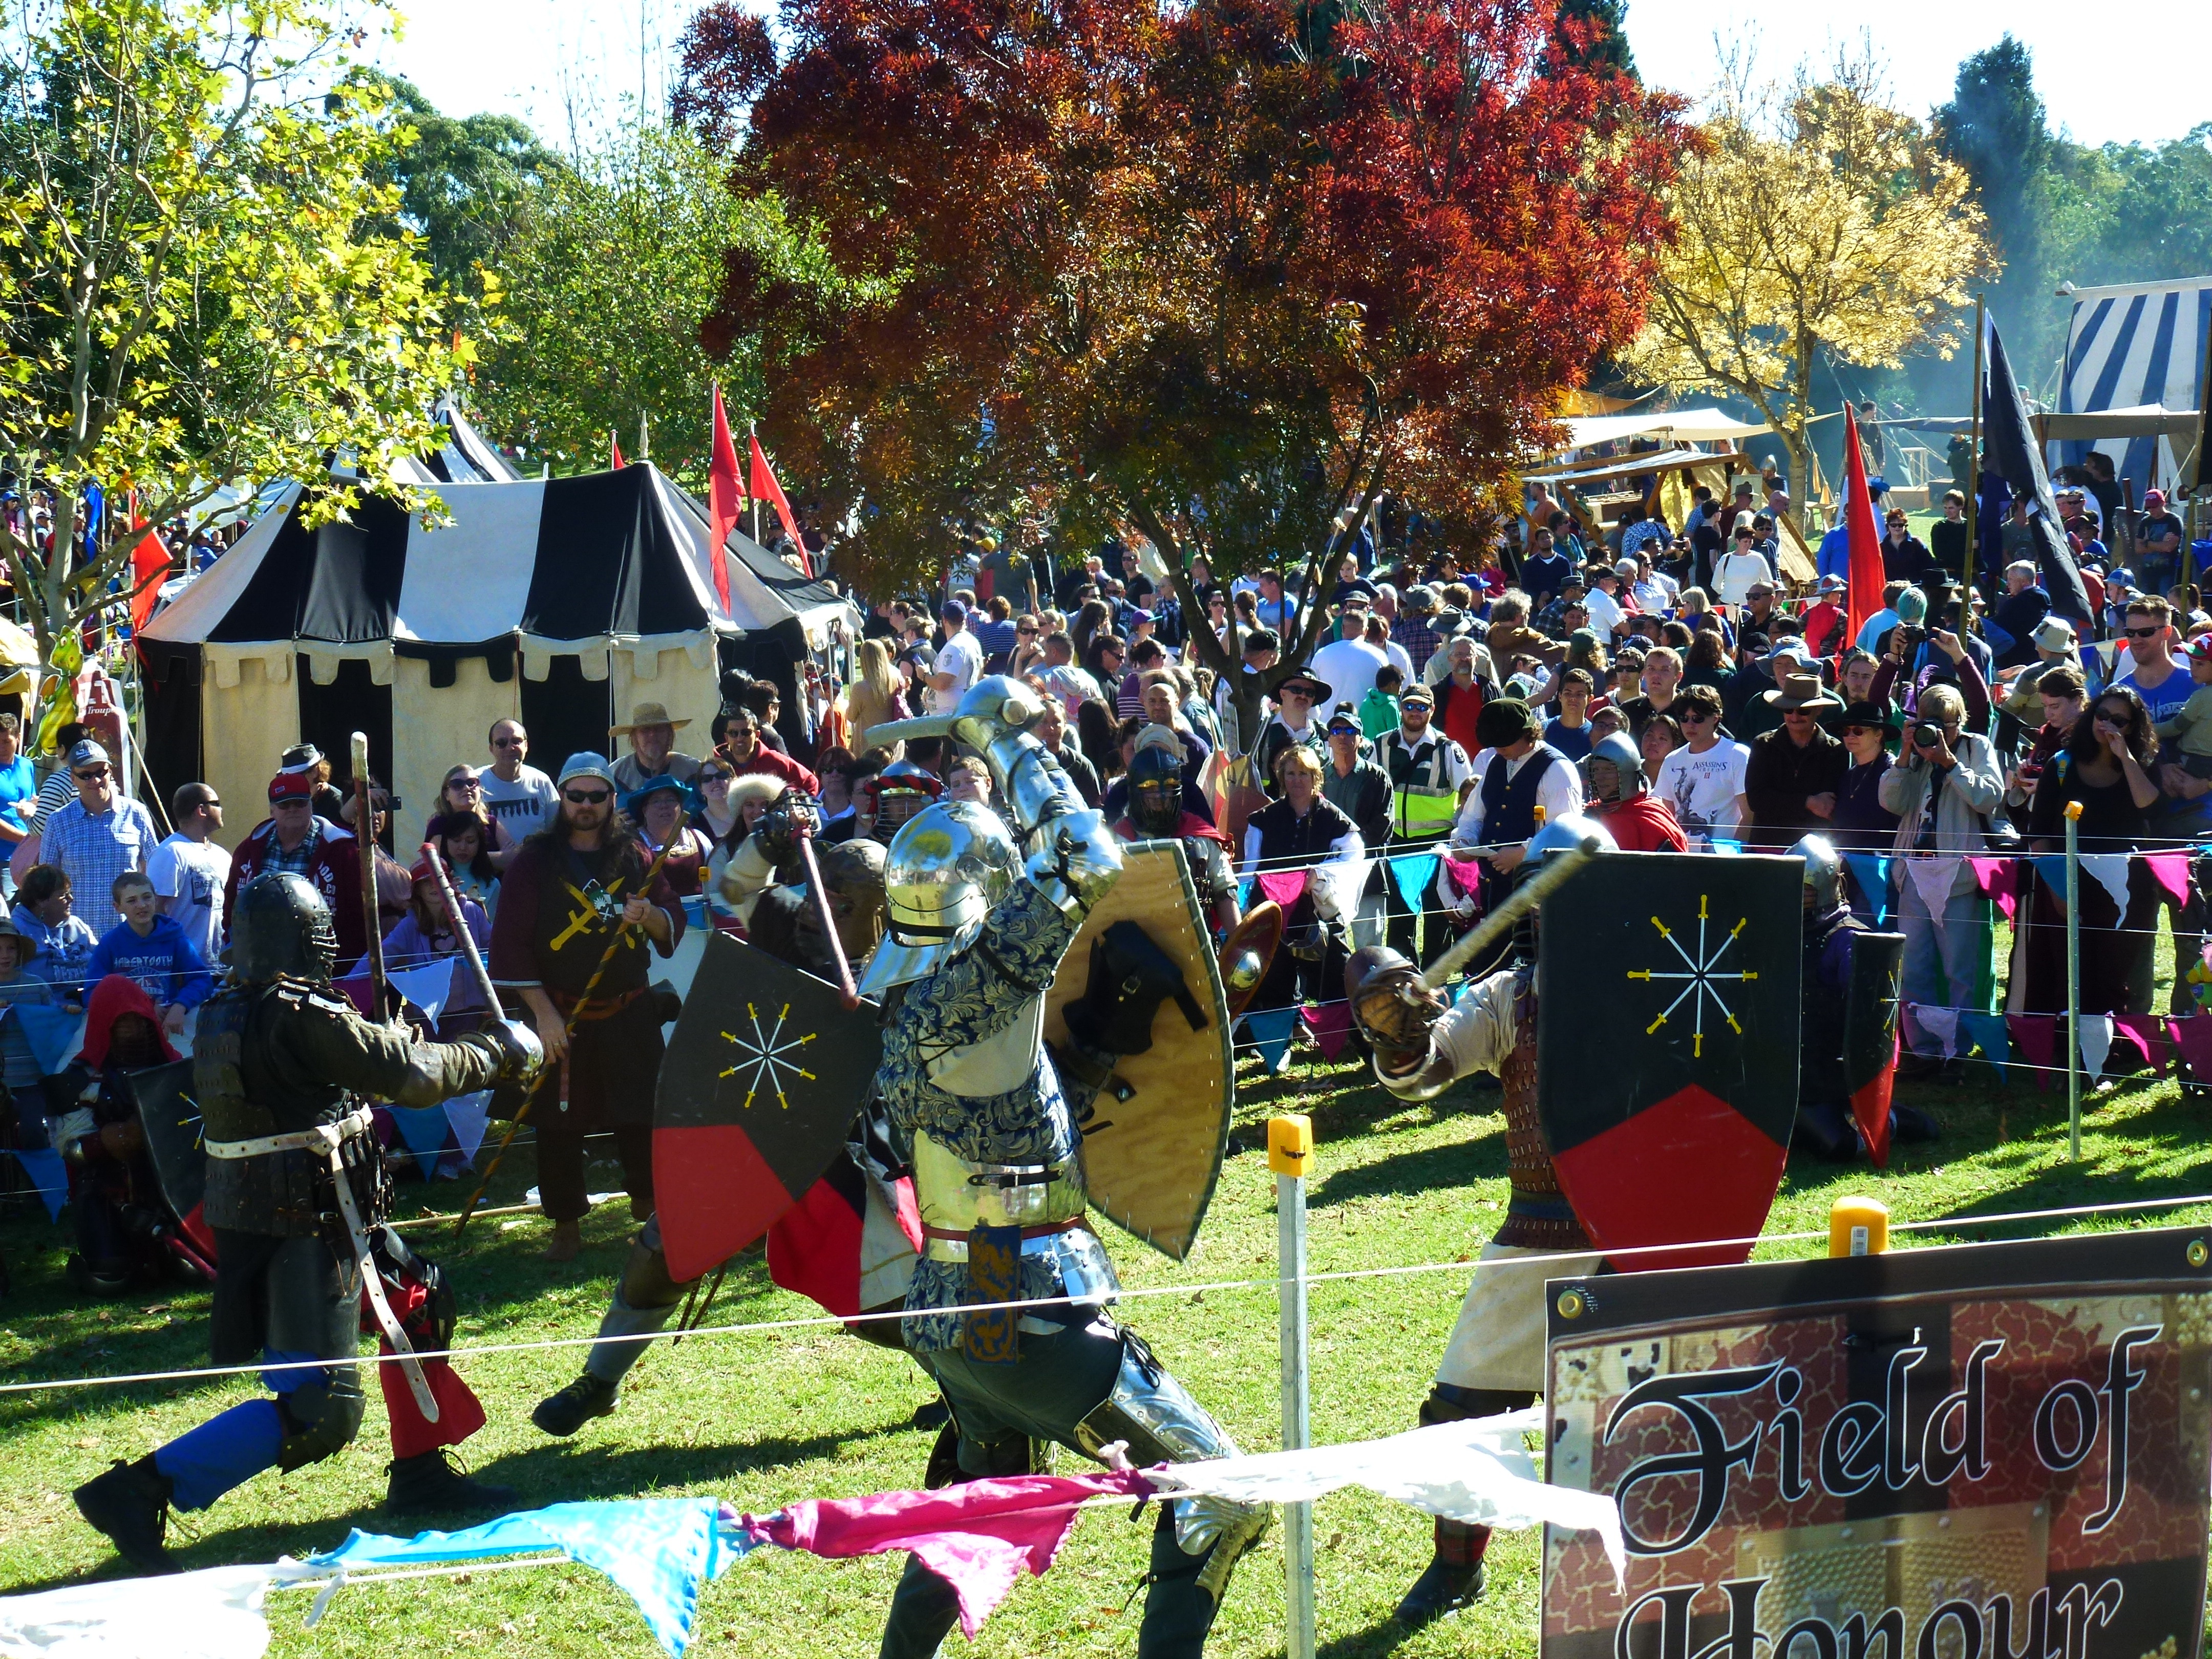 Monifieth Medieval Fair, a Charities Crowdfunding Project in ...